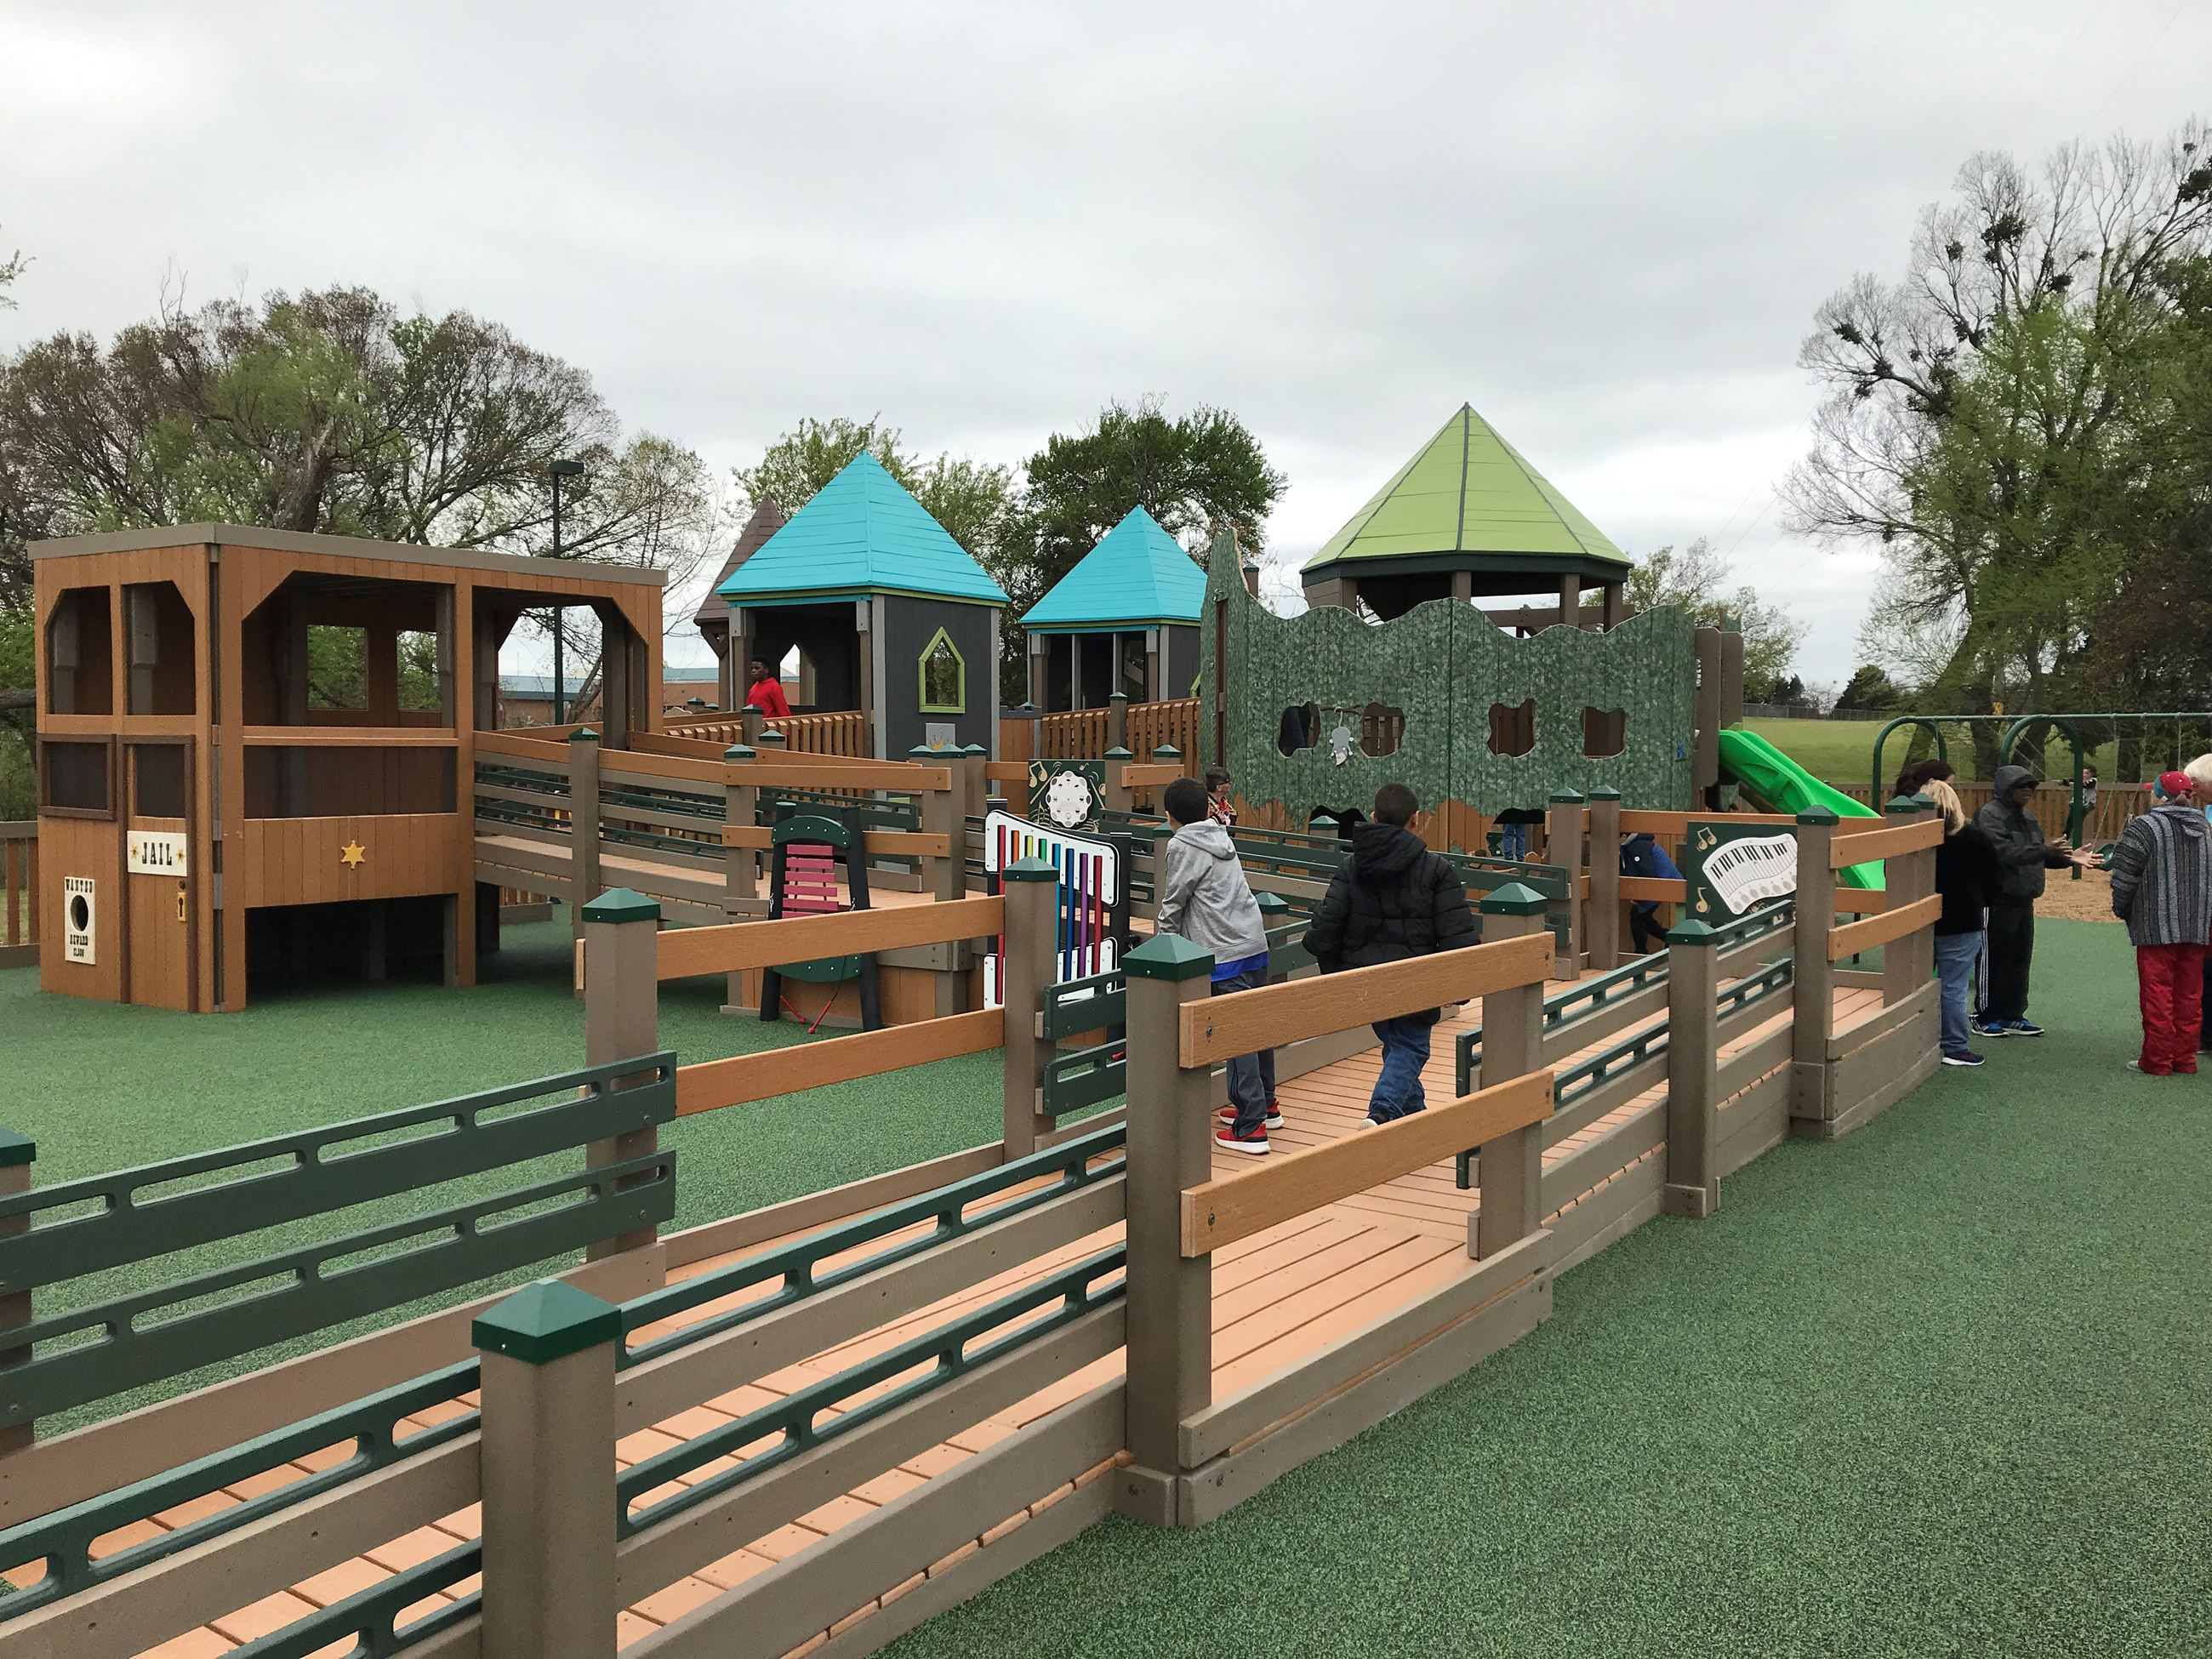 Creative Playground at Virginia Weaver Park